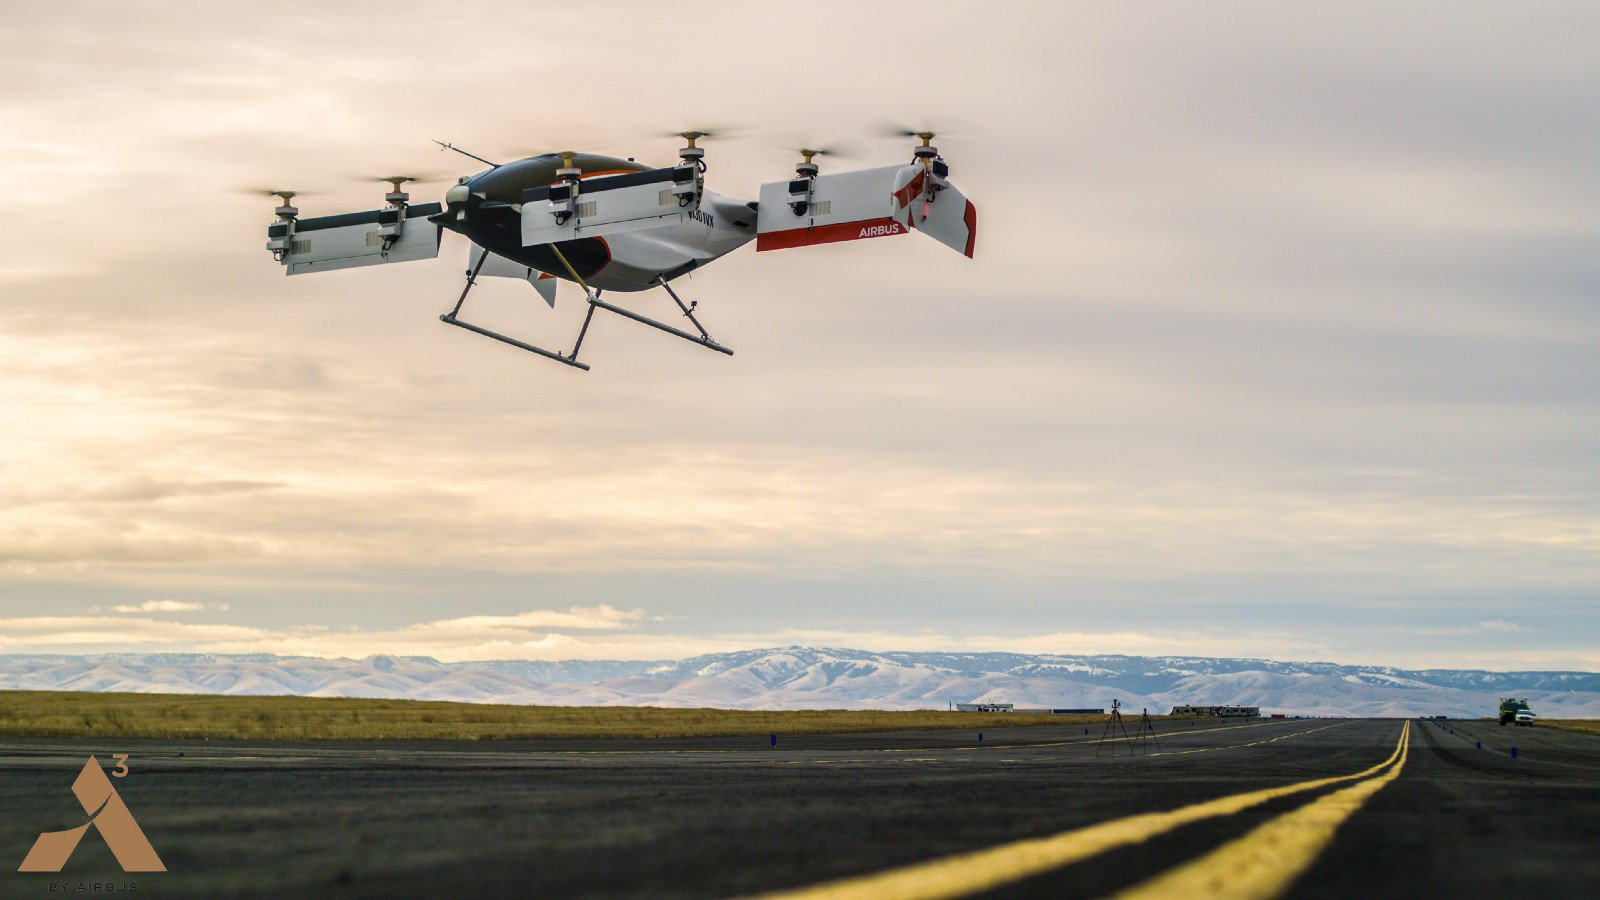 Airbus conducted the first tests of pilotless flying taxi